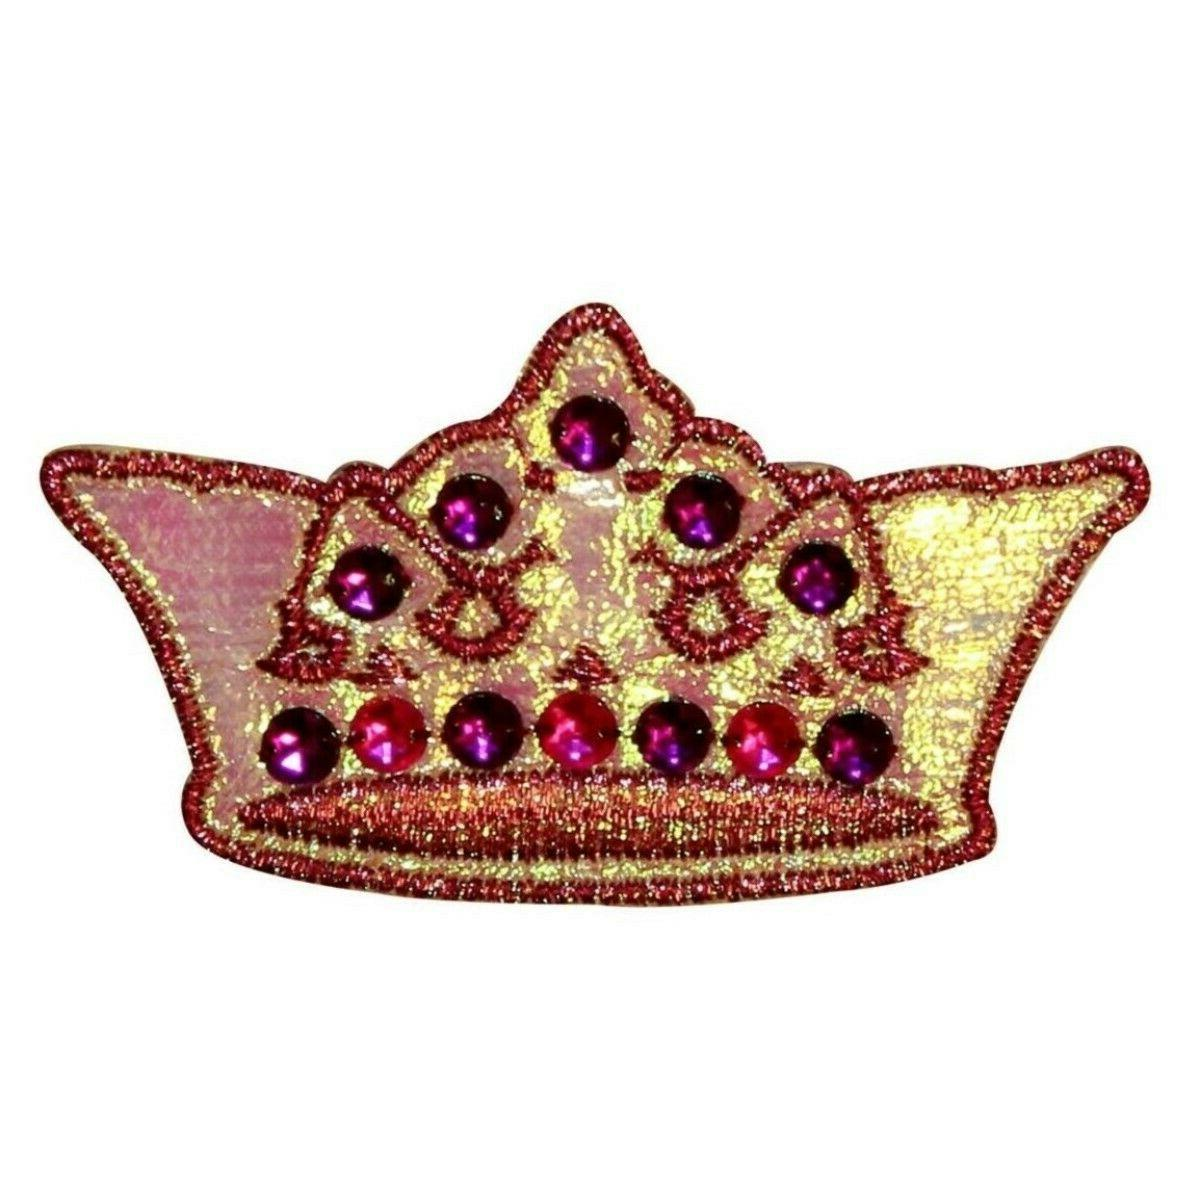 jeweled crown patch pretty princess queen costume